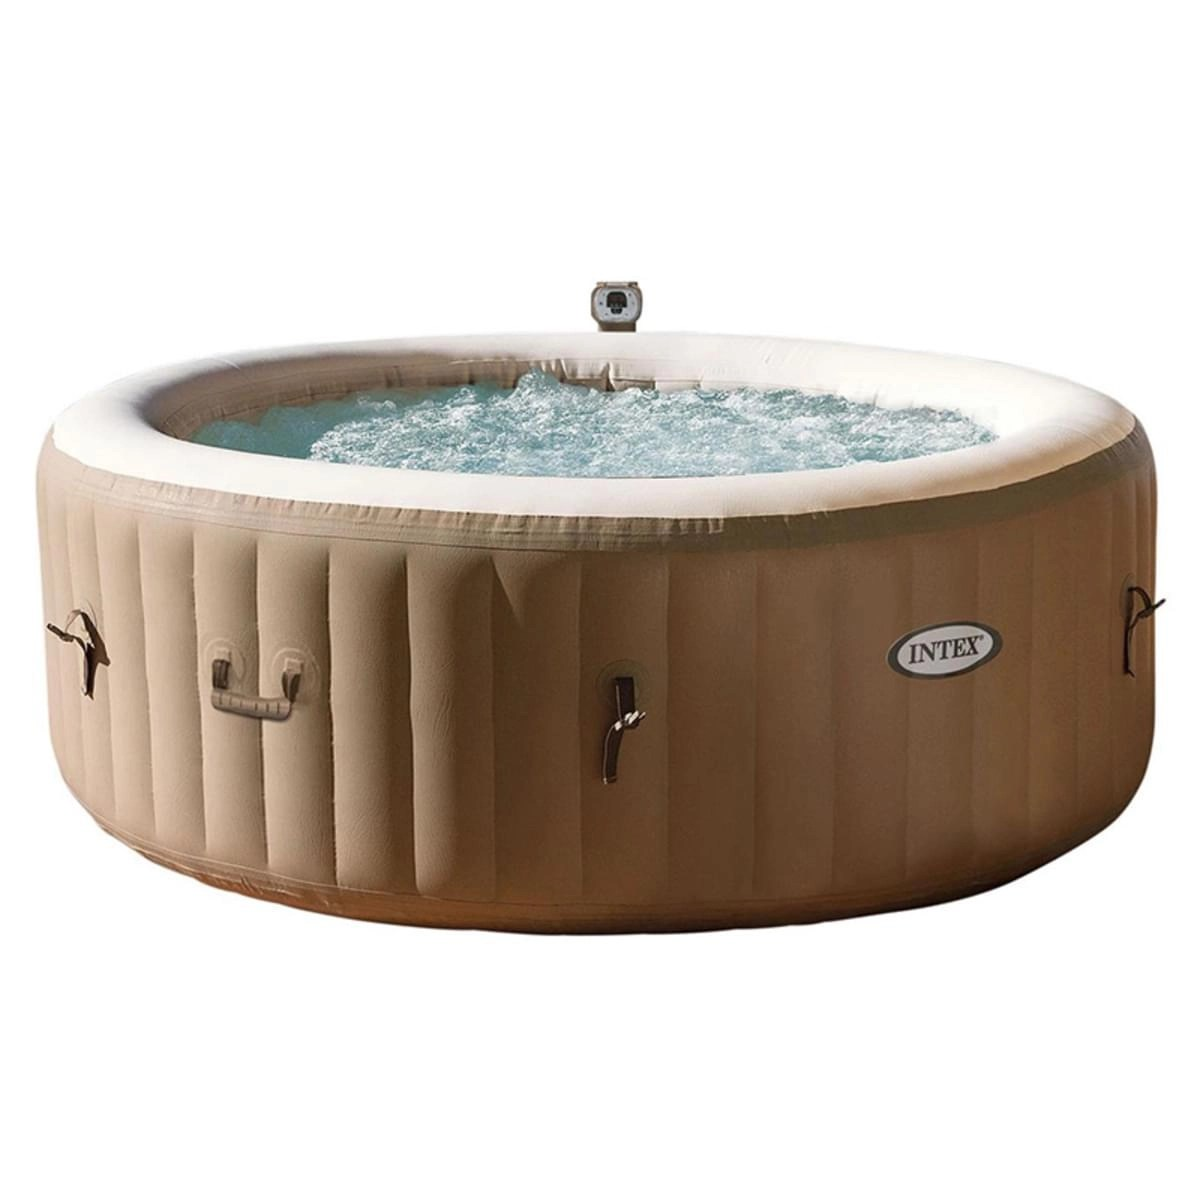 Hoe Een Intex Zwembad Opblazen Intex Pure Spa Bubble Therapy 4 Persoons